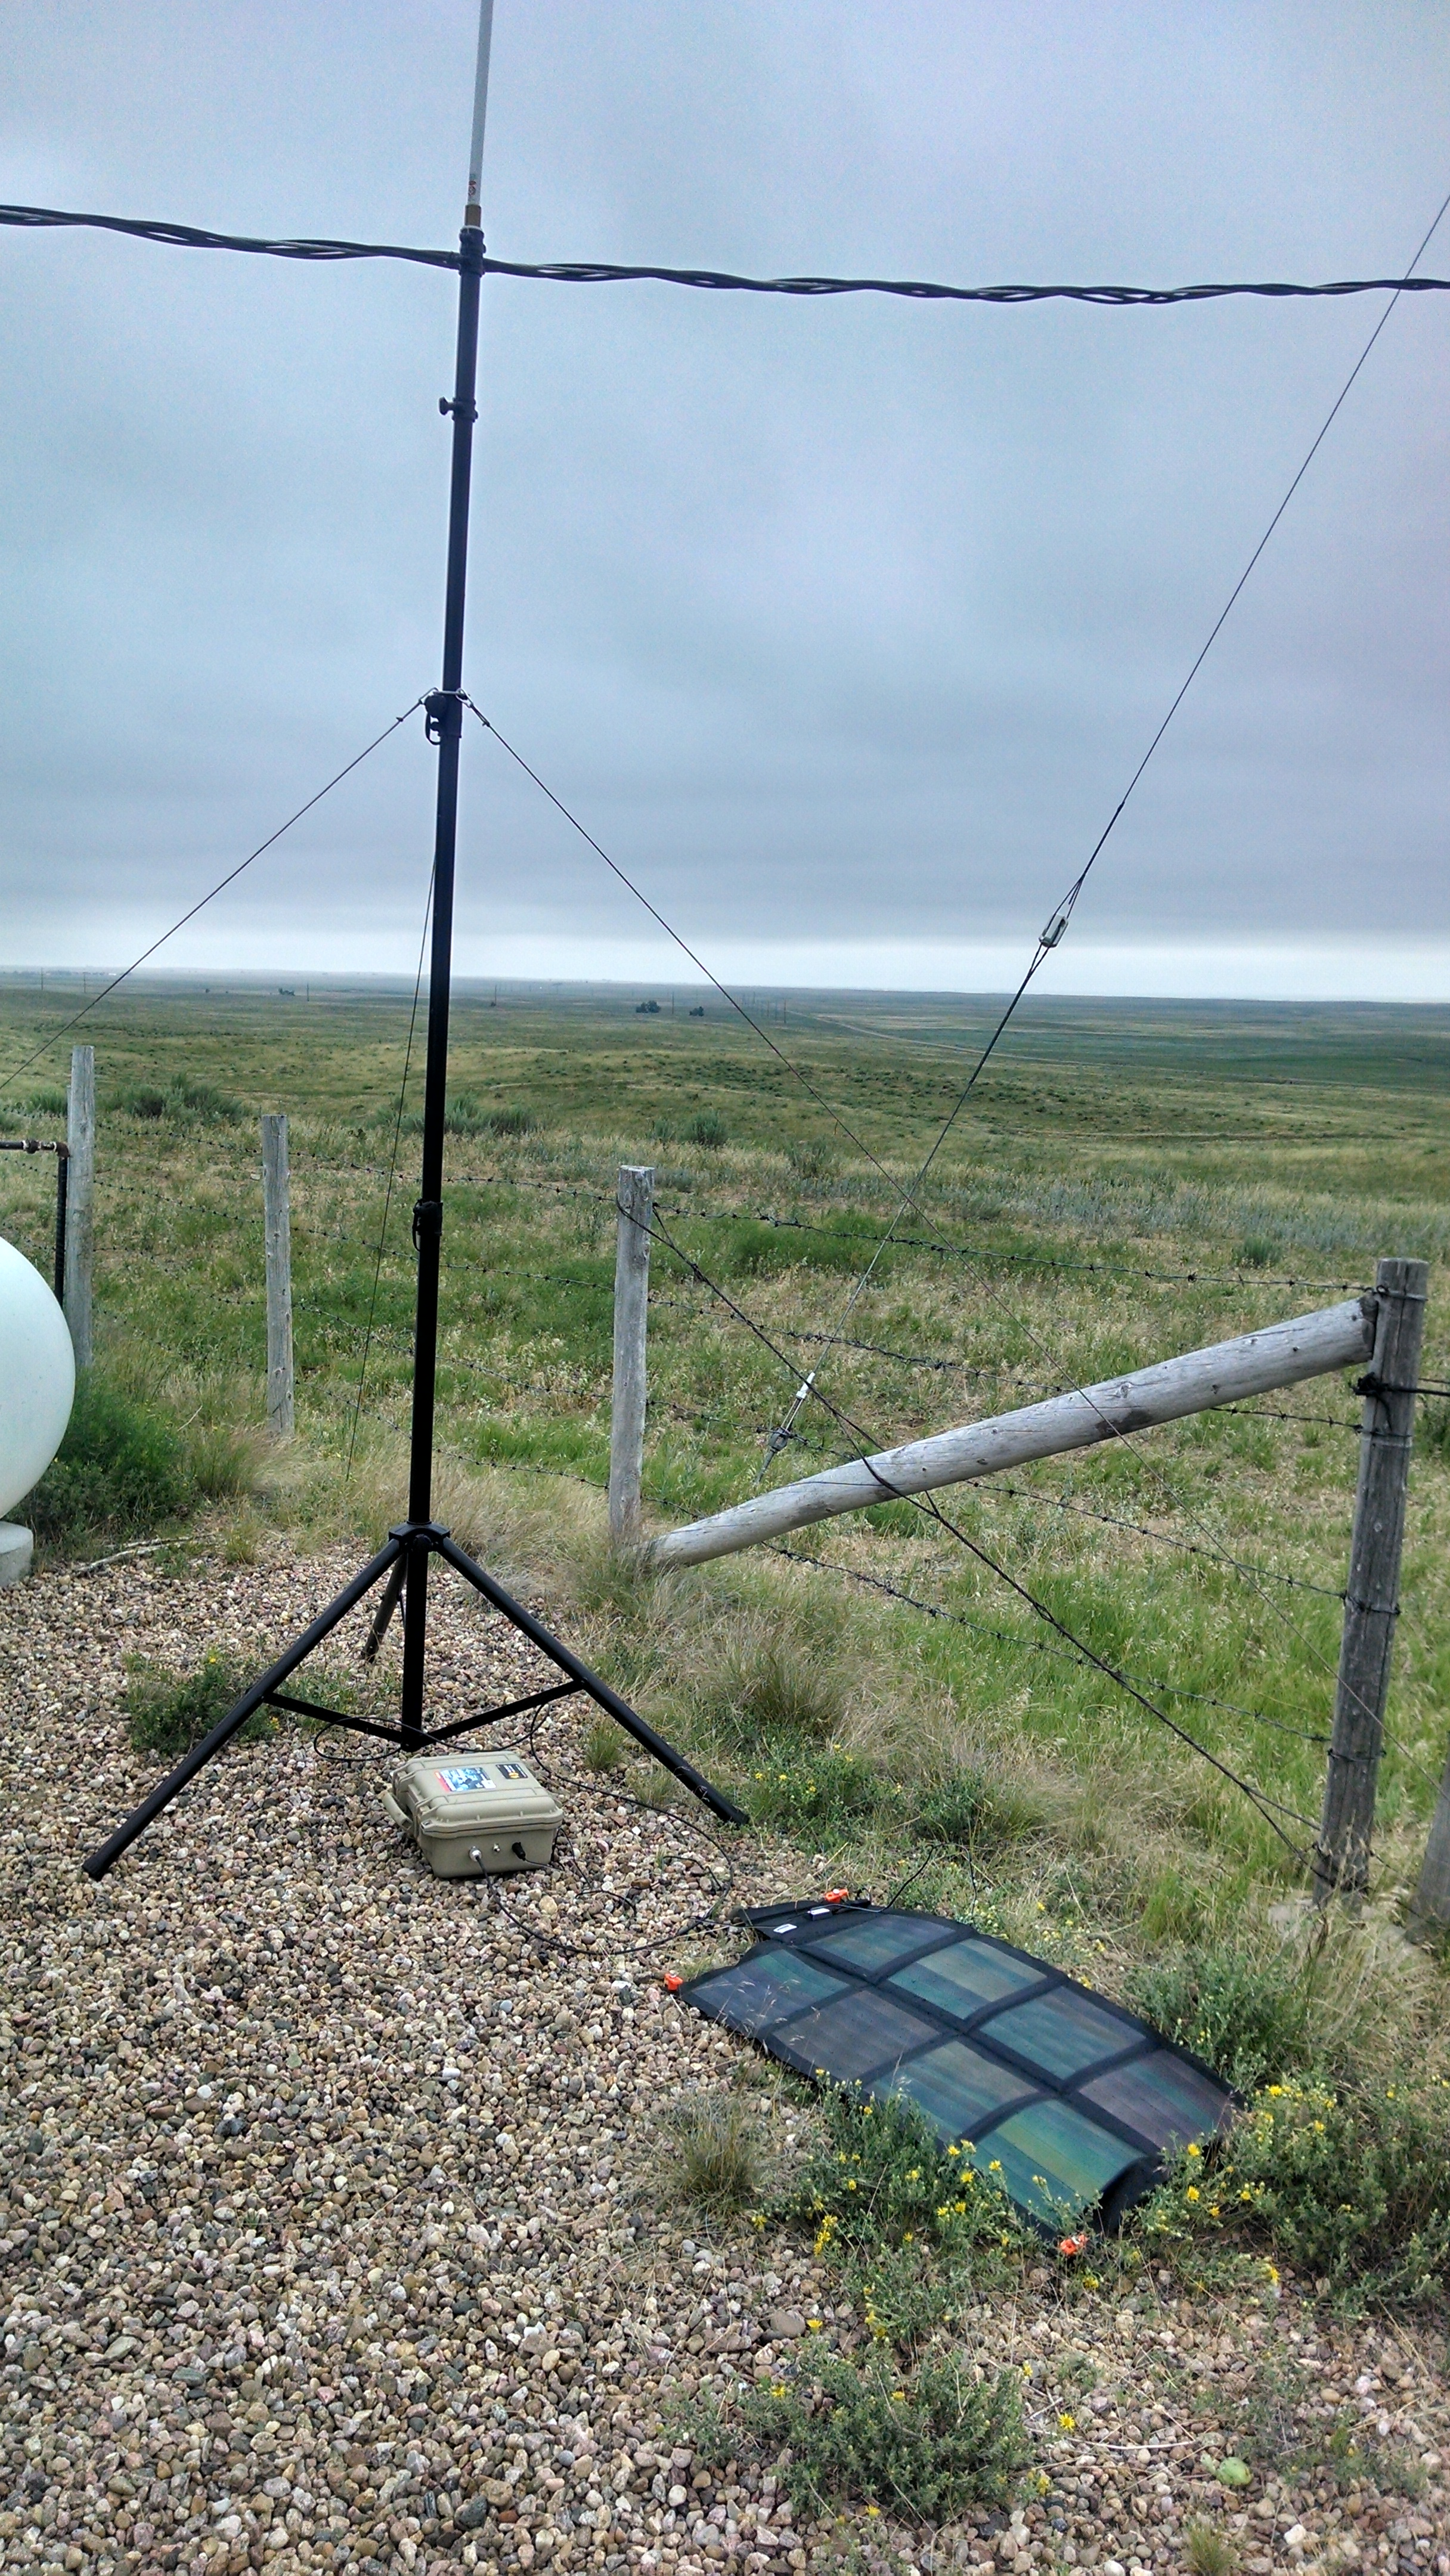 Repeater set up at a remote tower site.